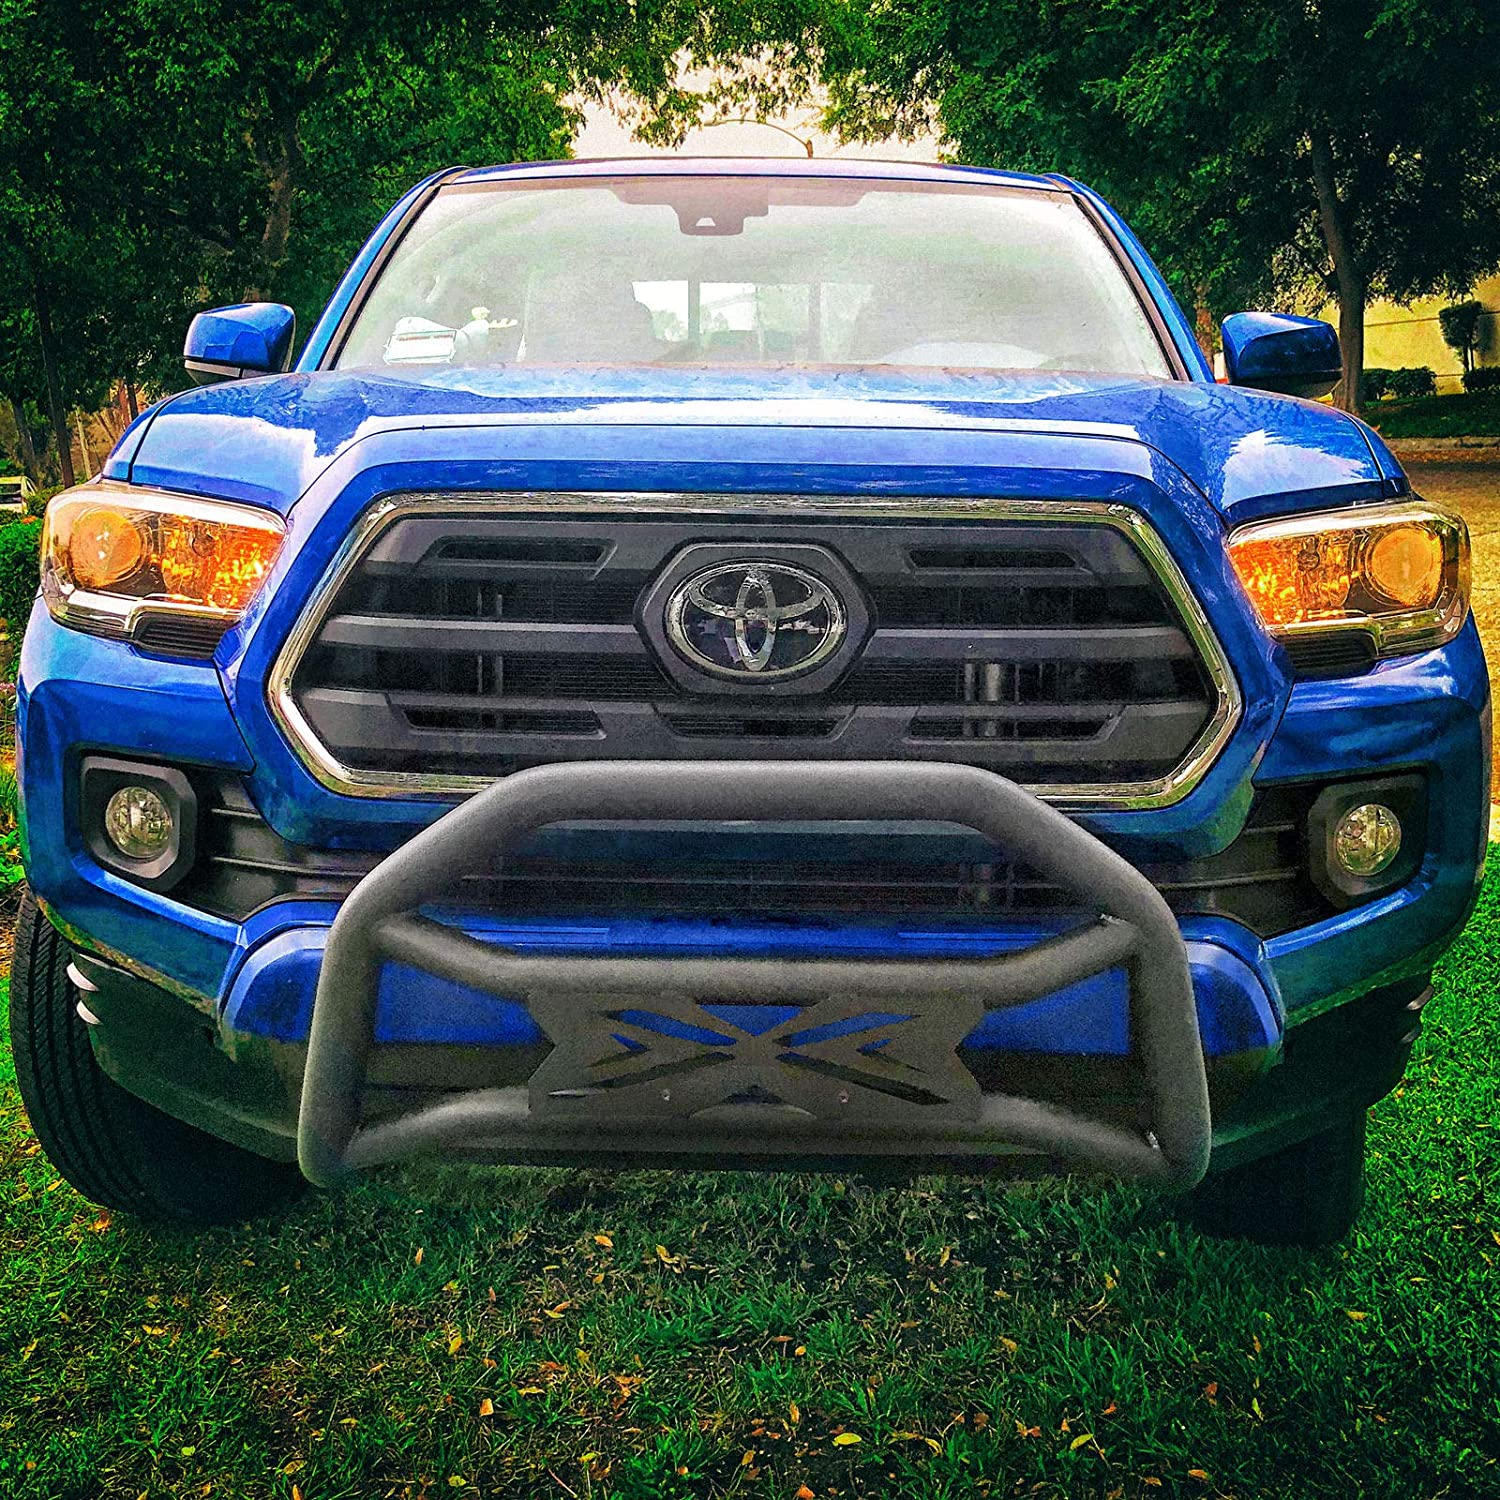 Ajaa 2005-2019 Fit Toyota Tacoma Bull Bar Front Bumper Guard US Flag Style